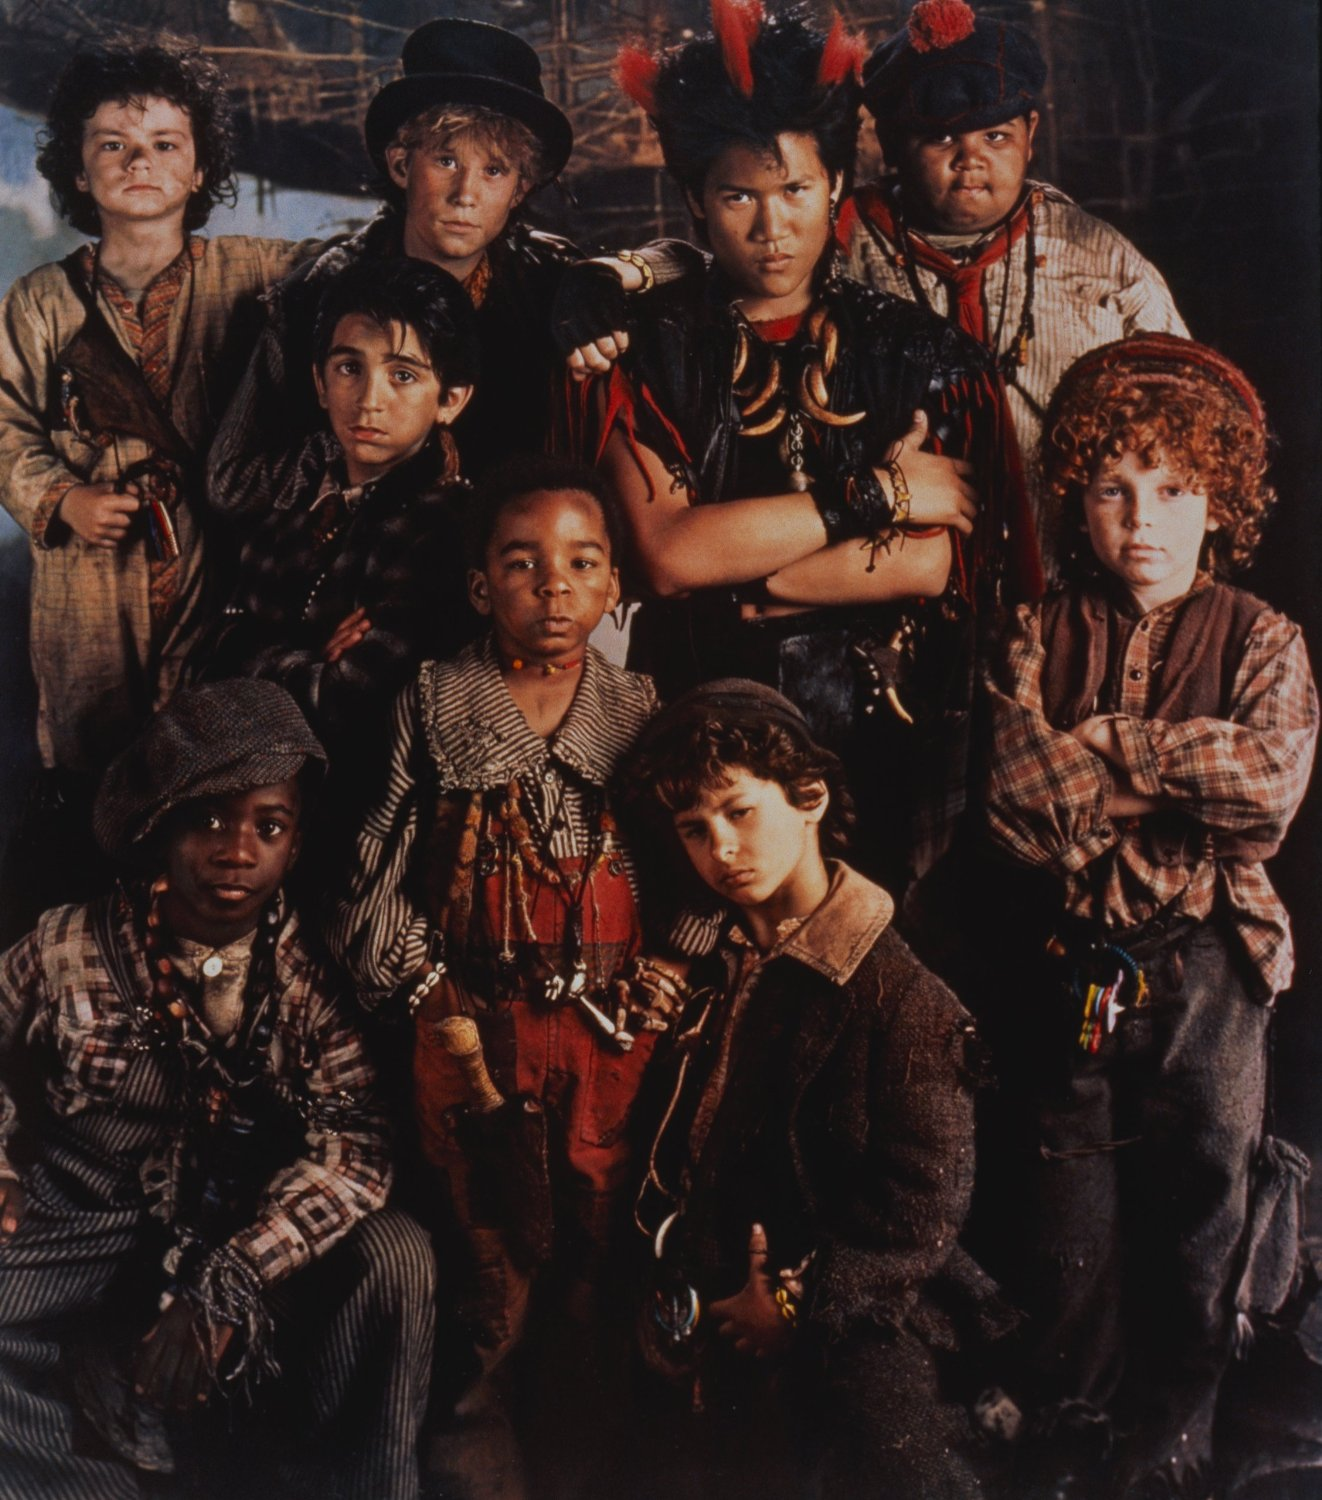 lost boys in hook